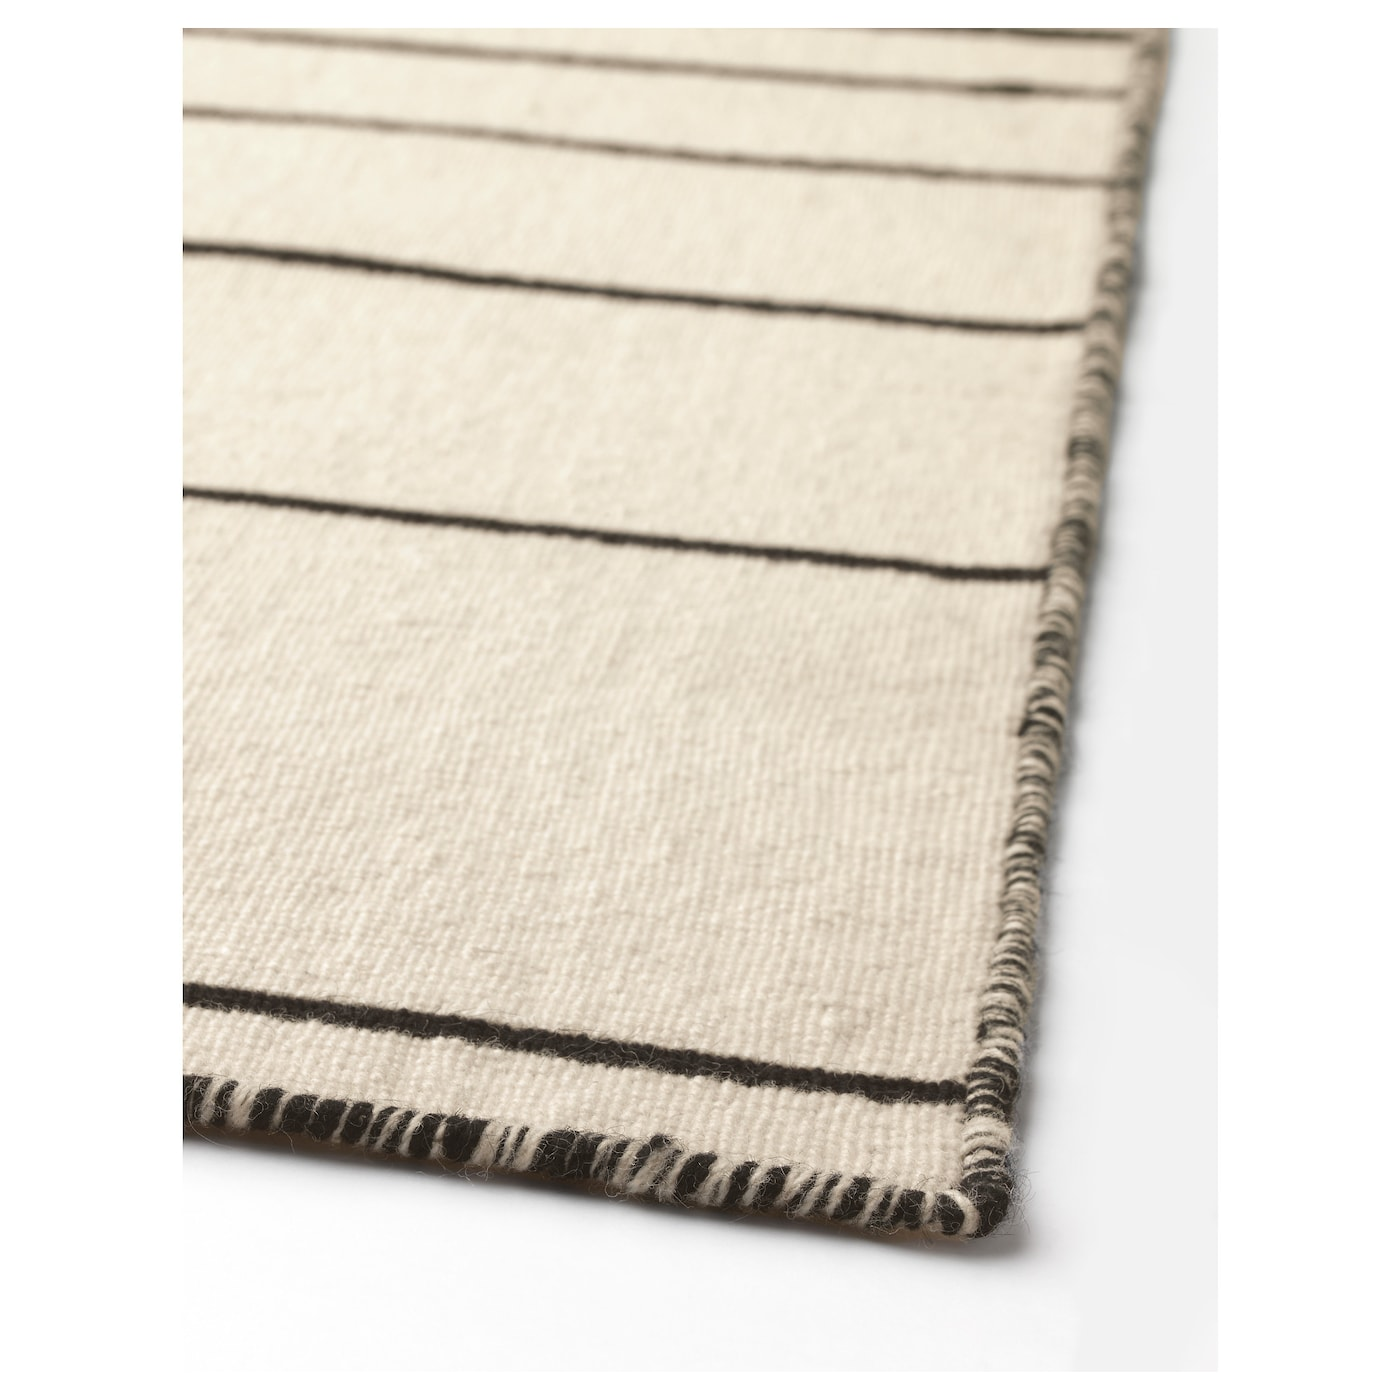 ikea ristinge rug flatwoven easy to vacuum thanks to its flat surface